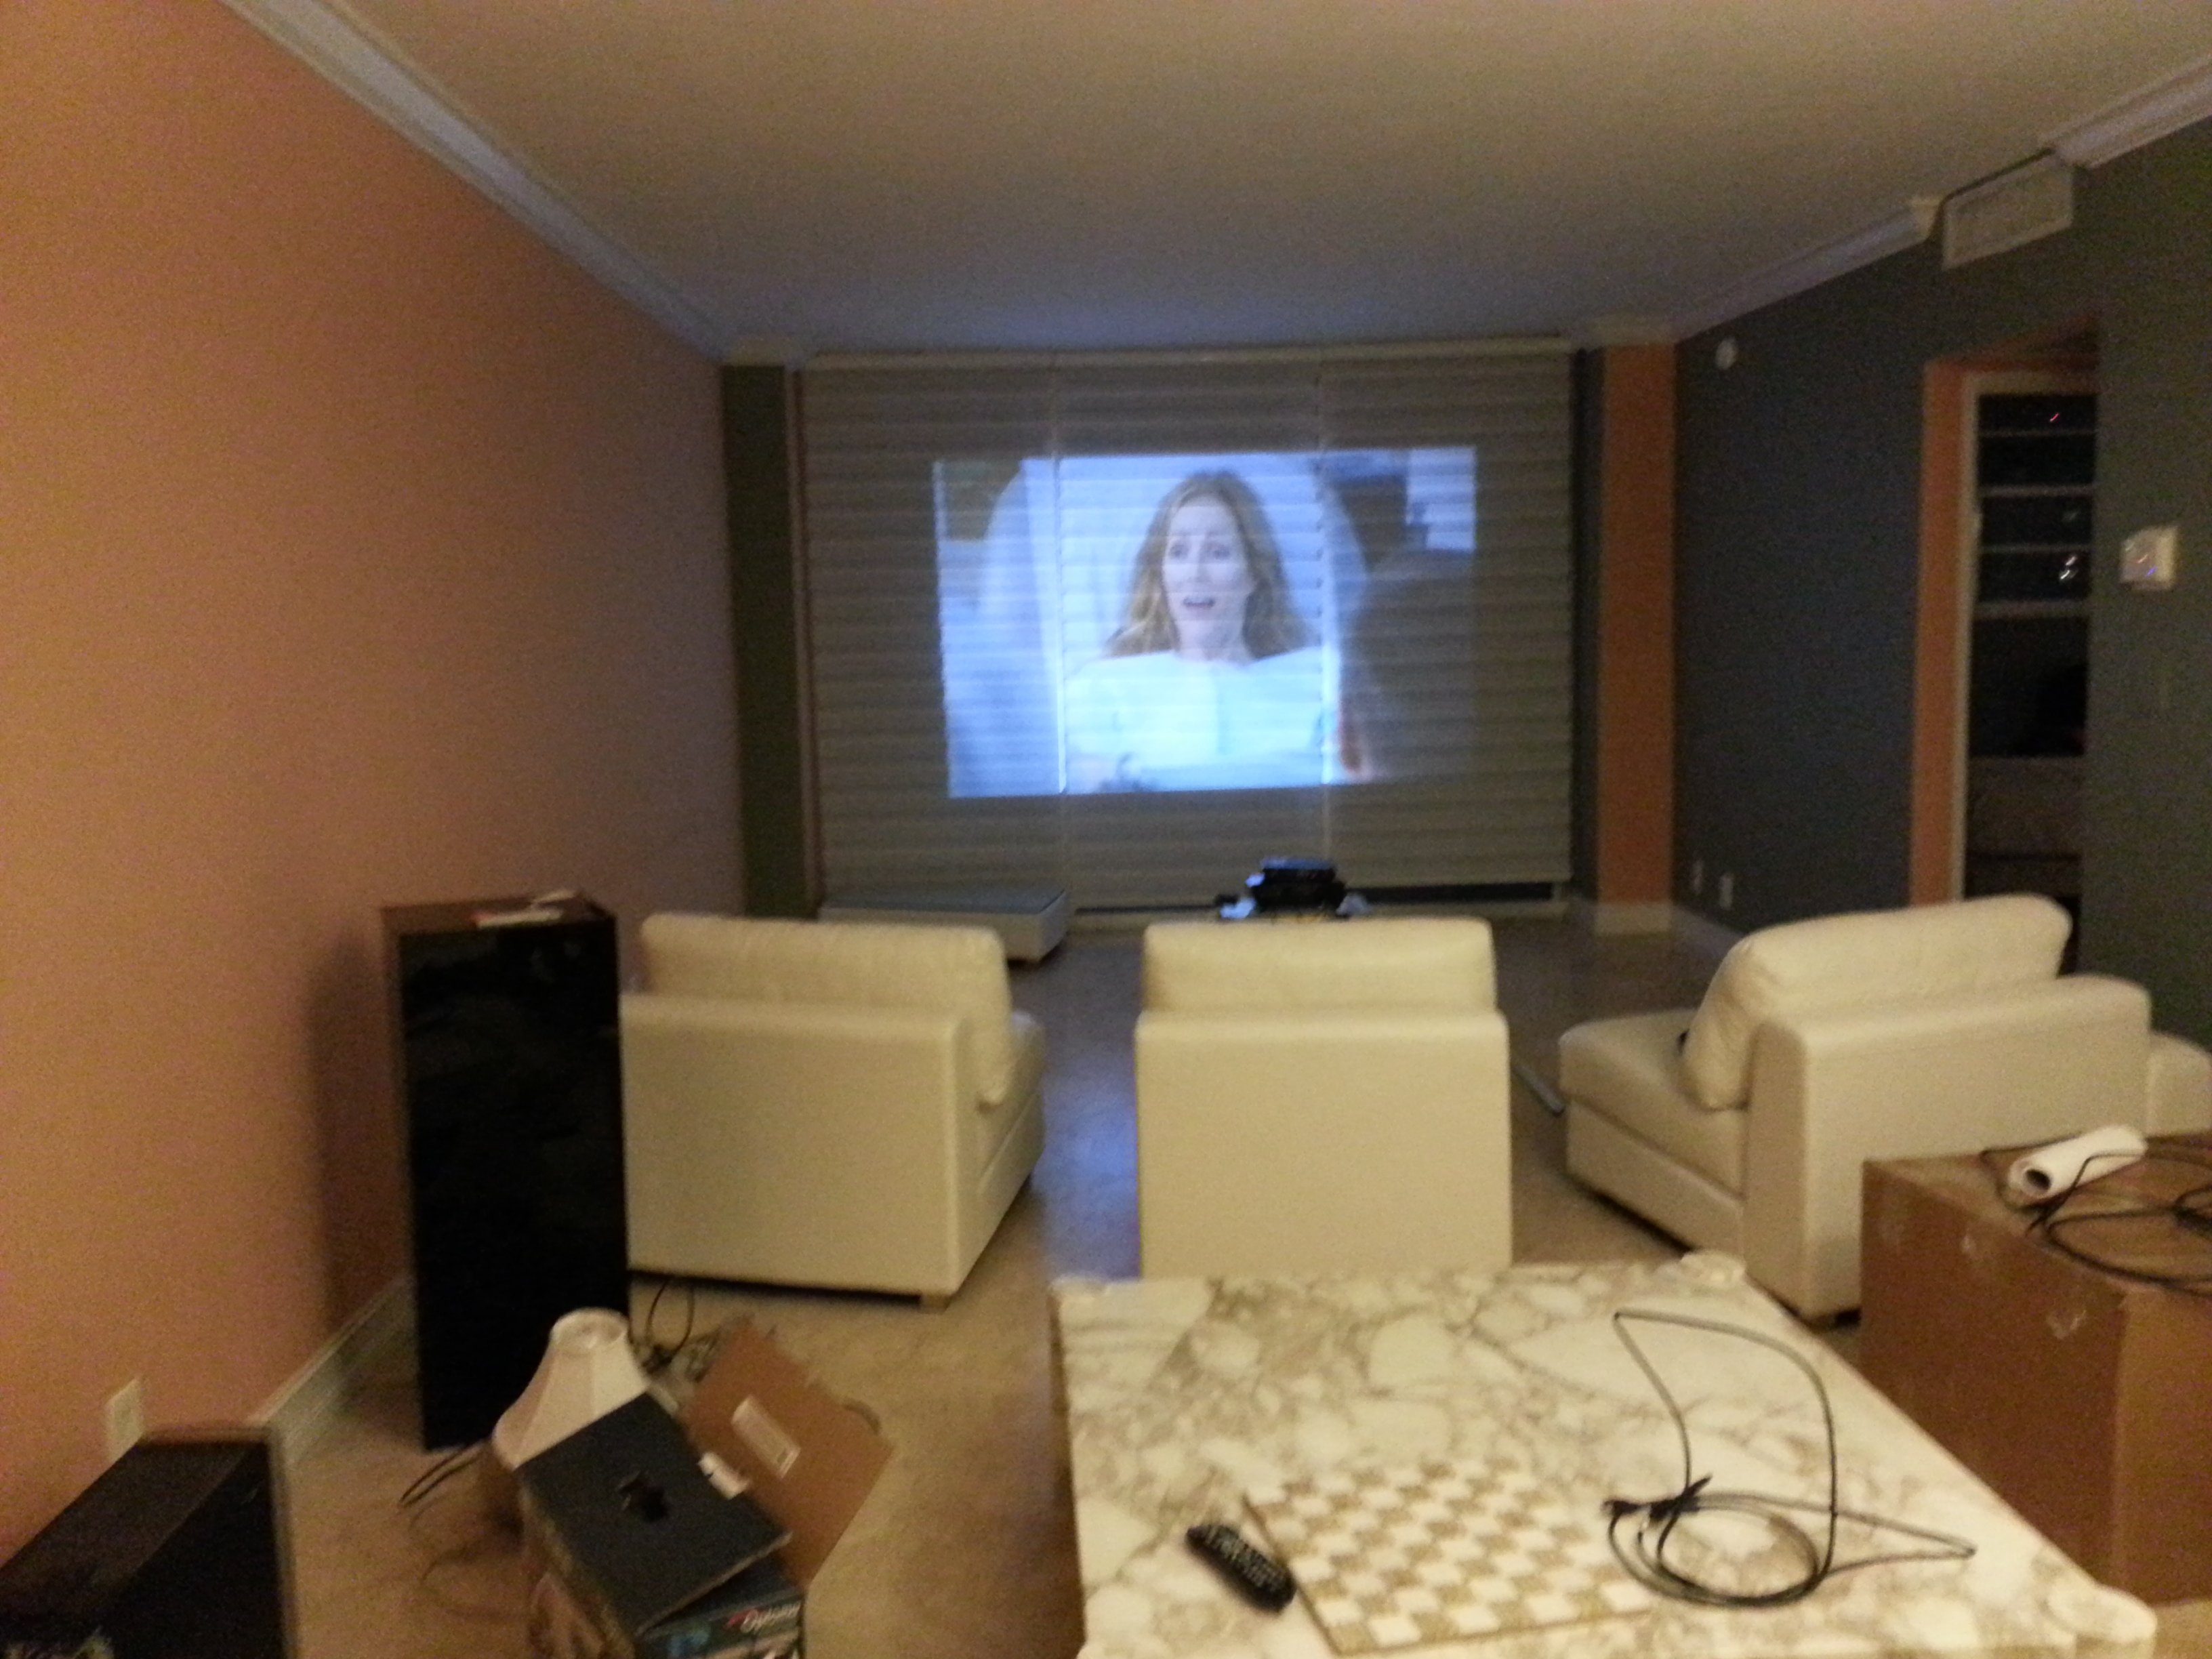 Projector in 1 bedroom apartment in living room - AVS Forum | Home ...